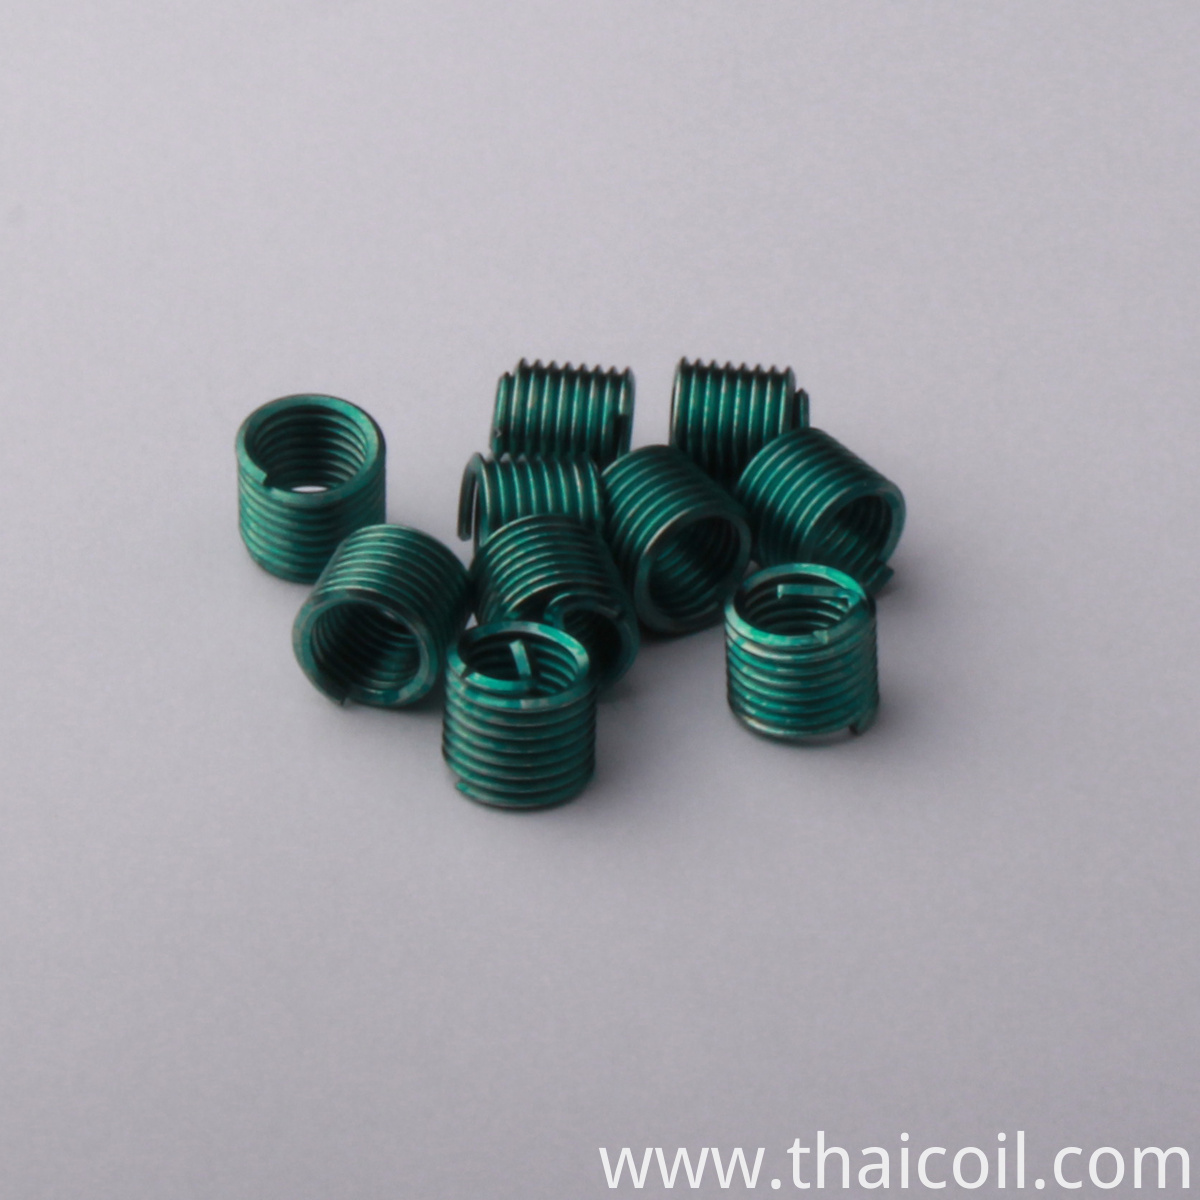 Coated Thread Insert for Metal